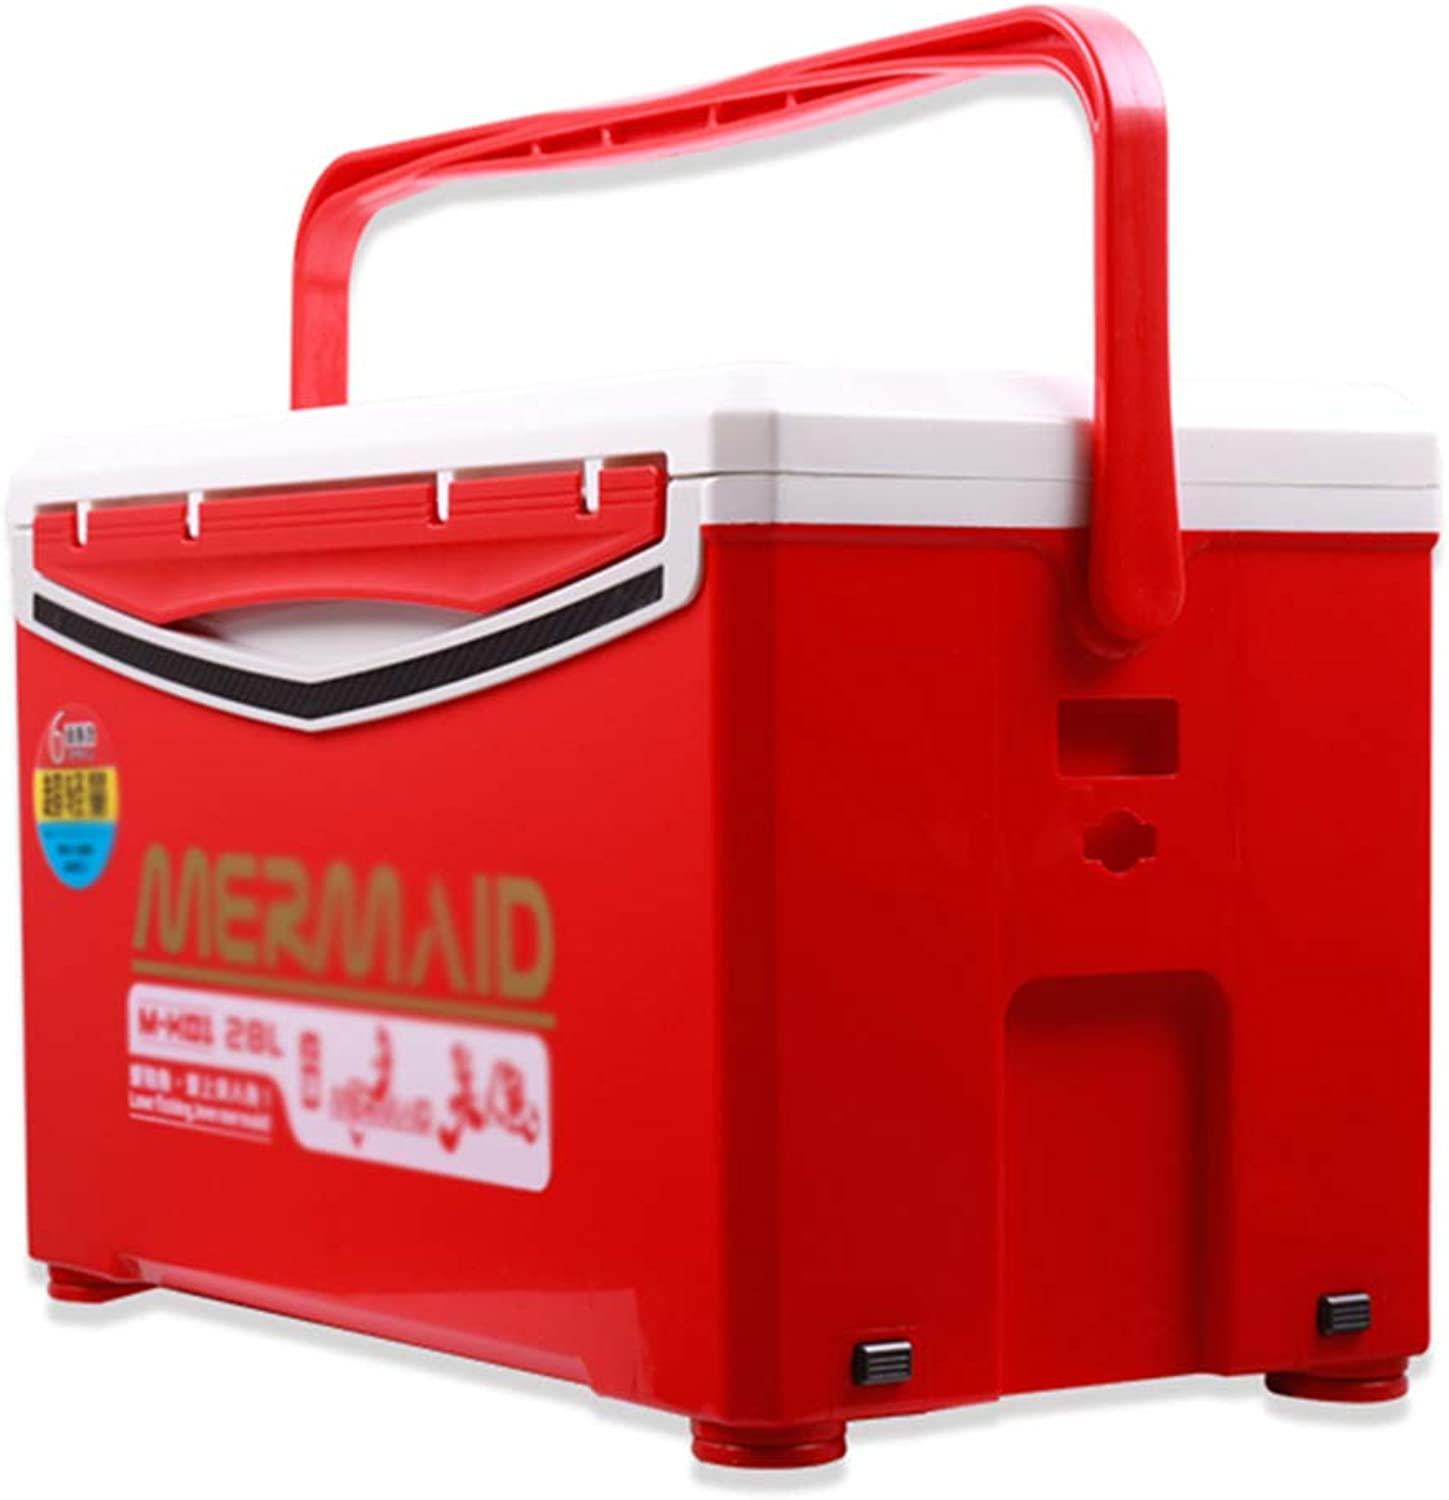 Tackle Boxes Fishing Box Fishing Tackle Boxes MultiFunction Fishing Box Cooler Box Storage Box 28 Liters Capacity Gift (color   Red, Size   52  32  30cm)